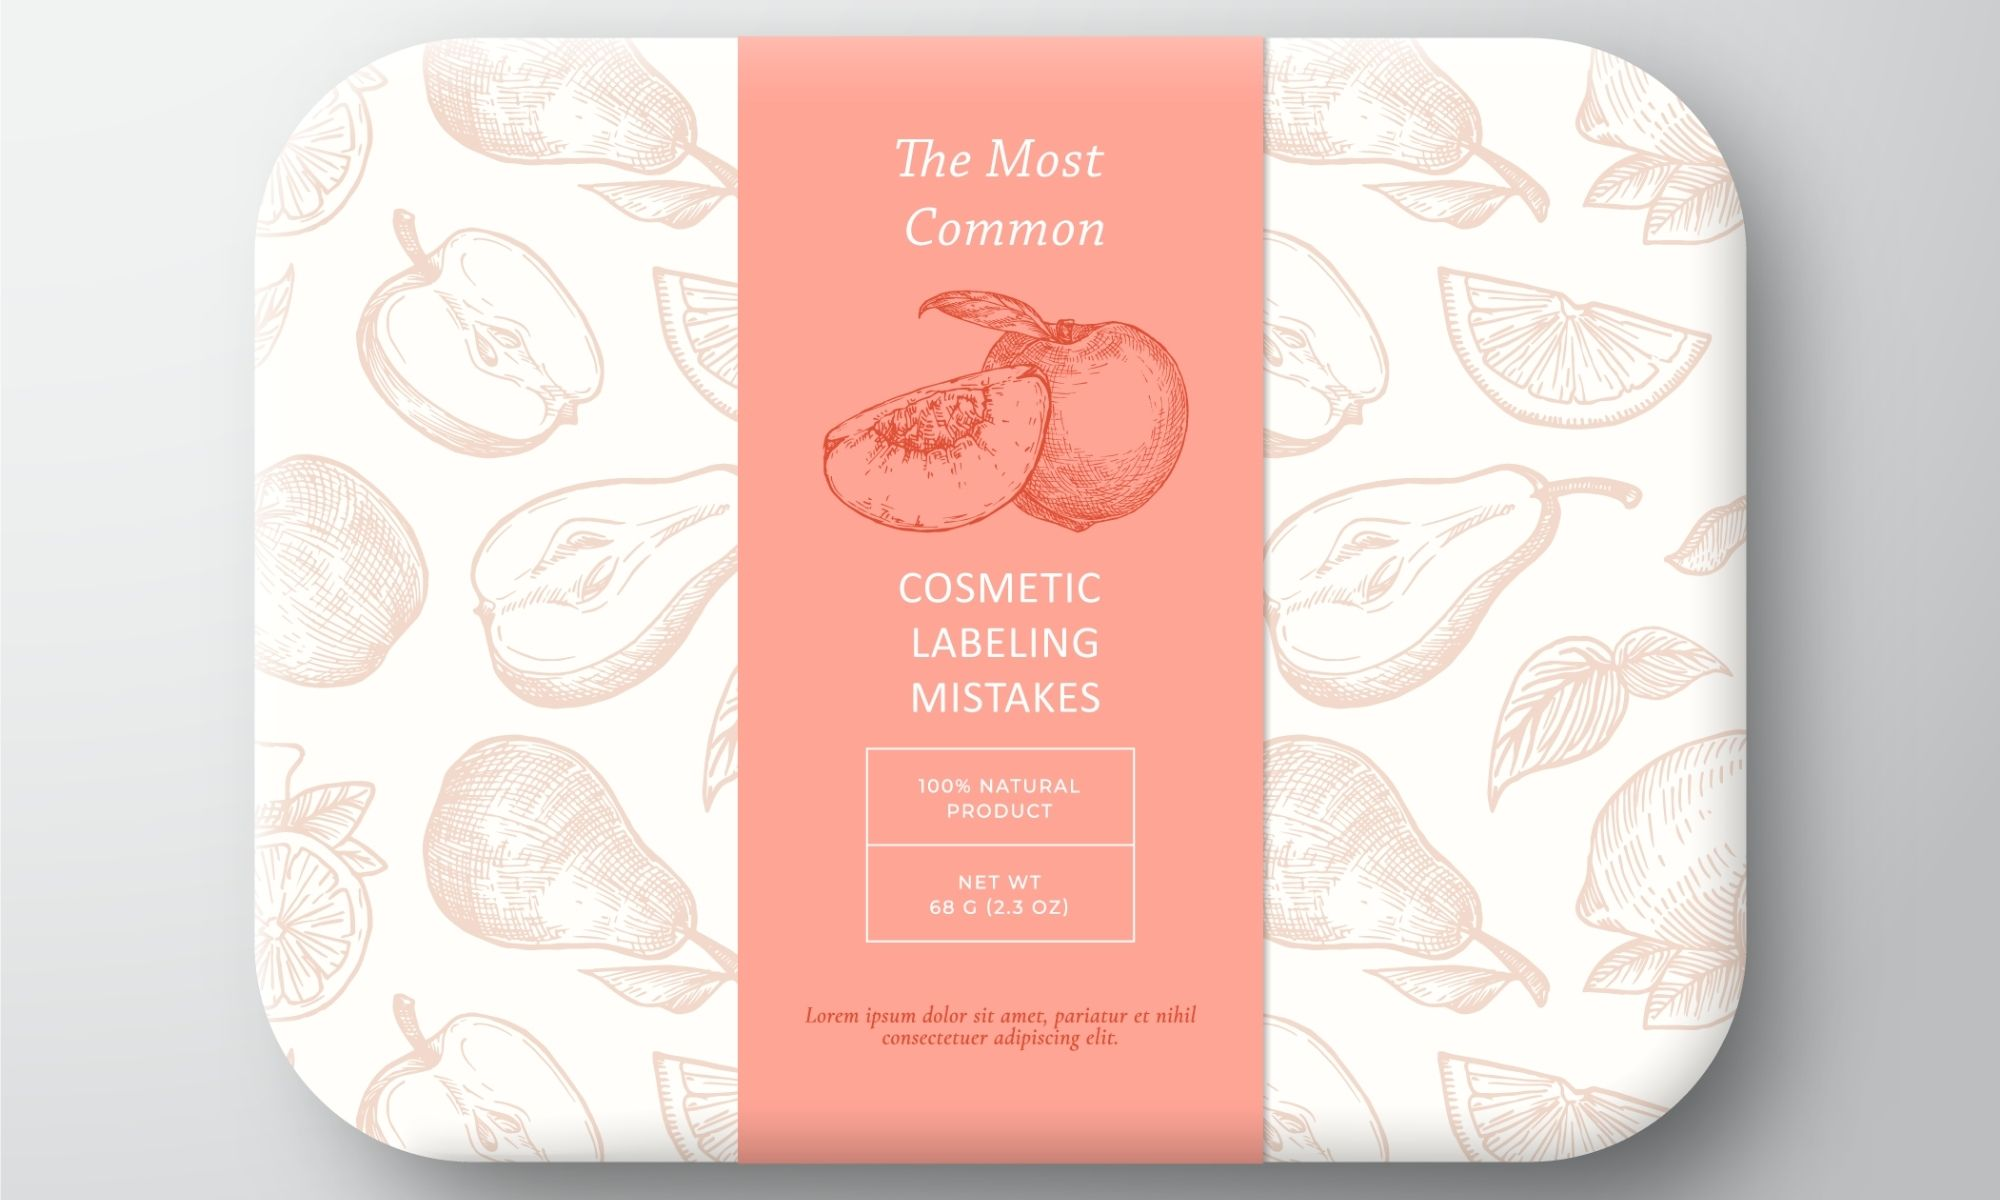 The Most Common Cosmetic Labeling Mistakes